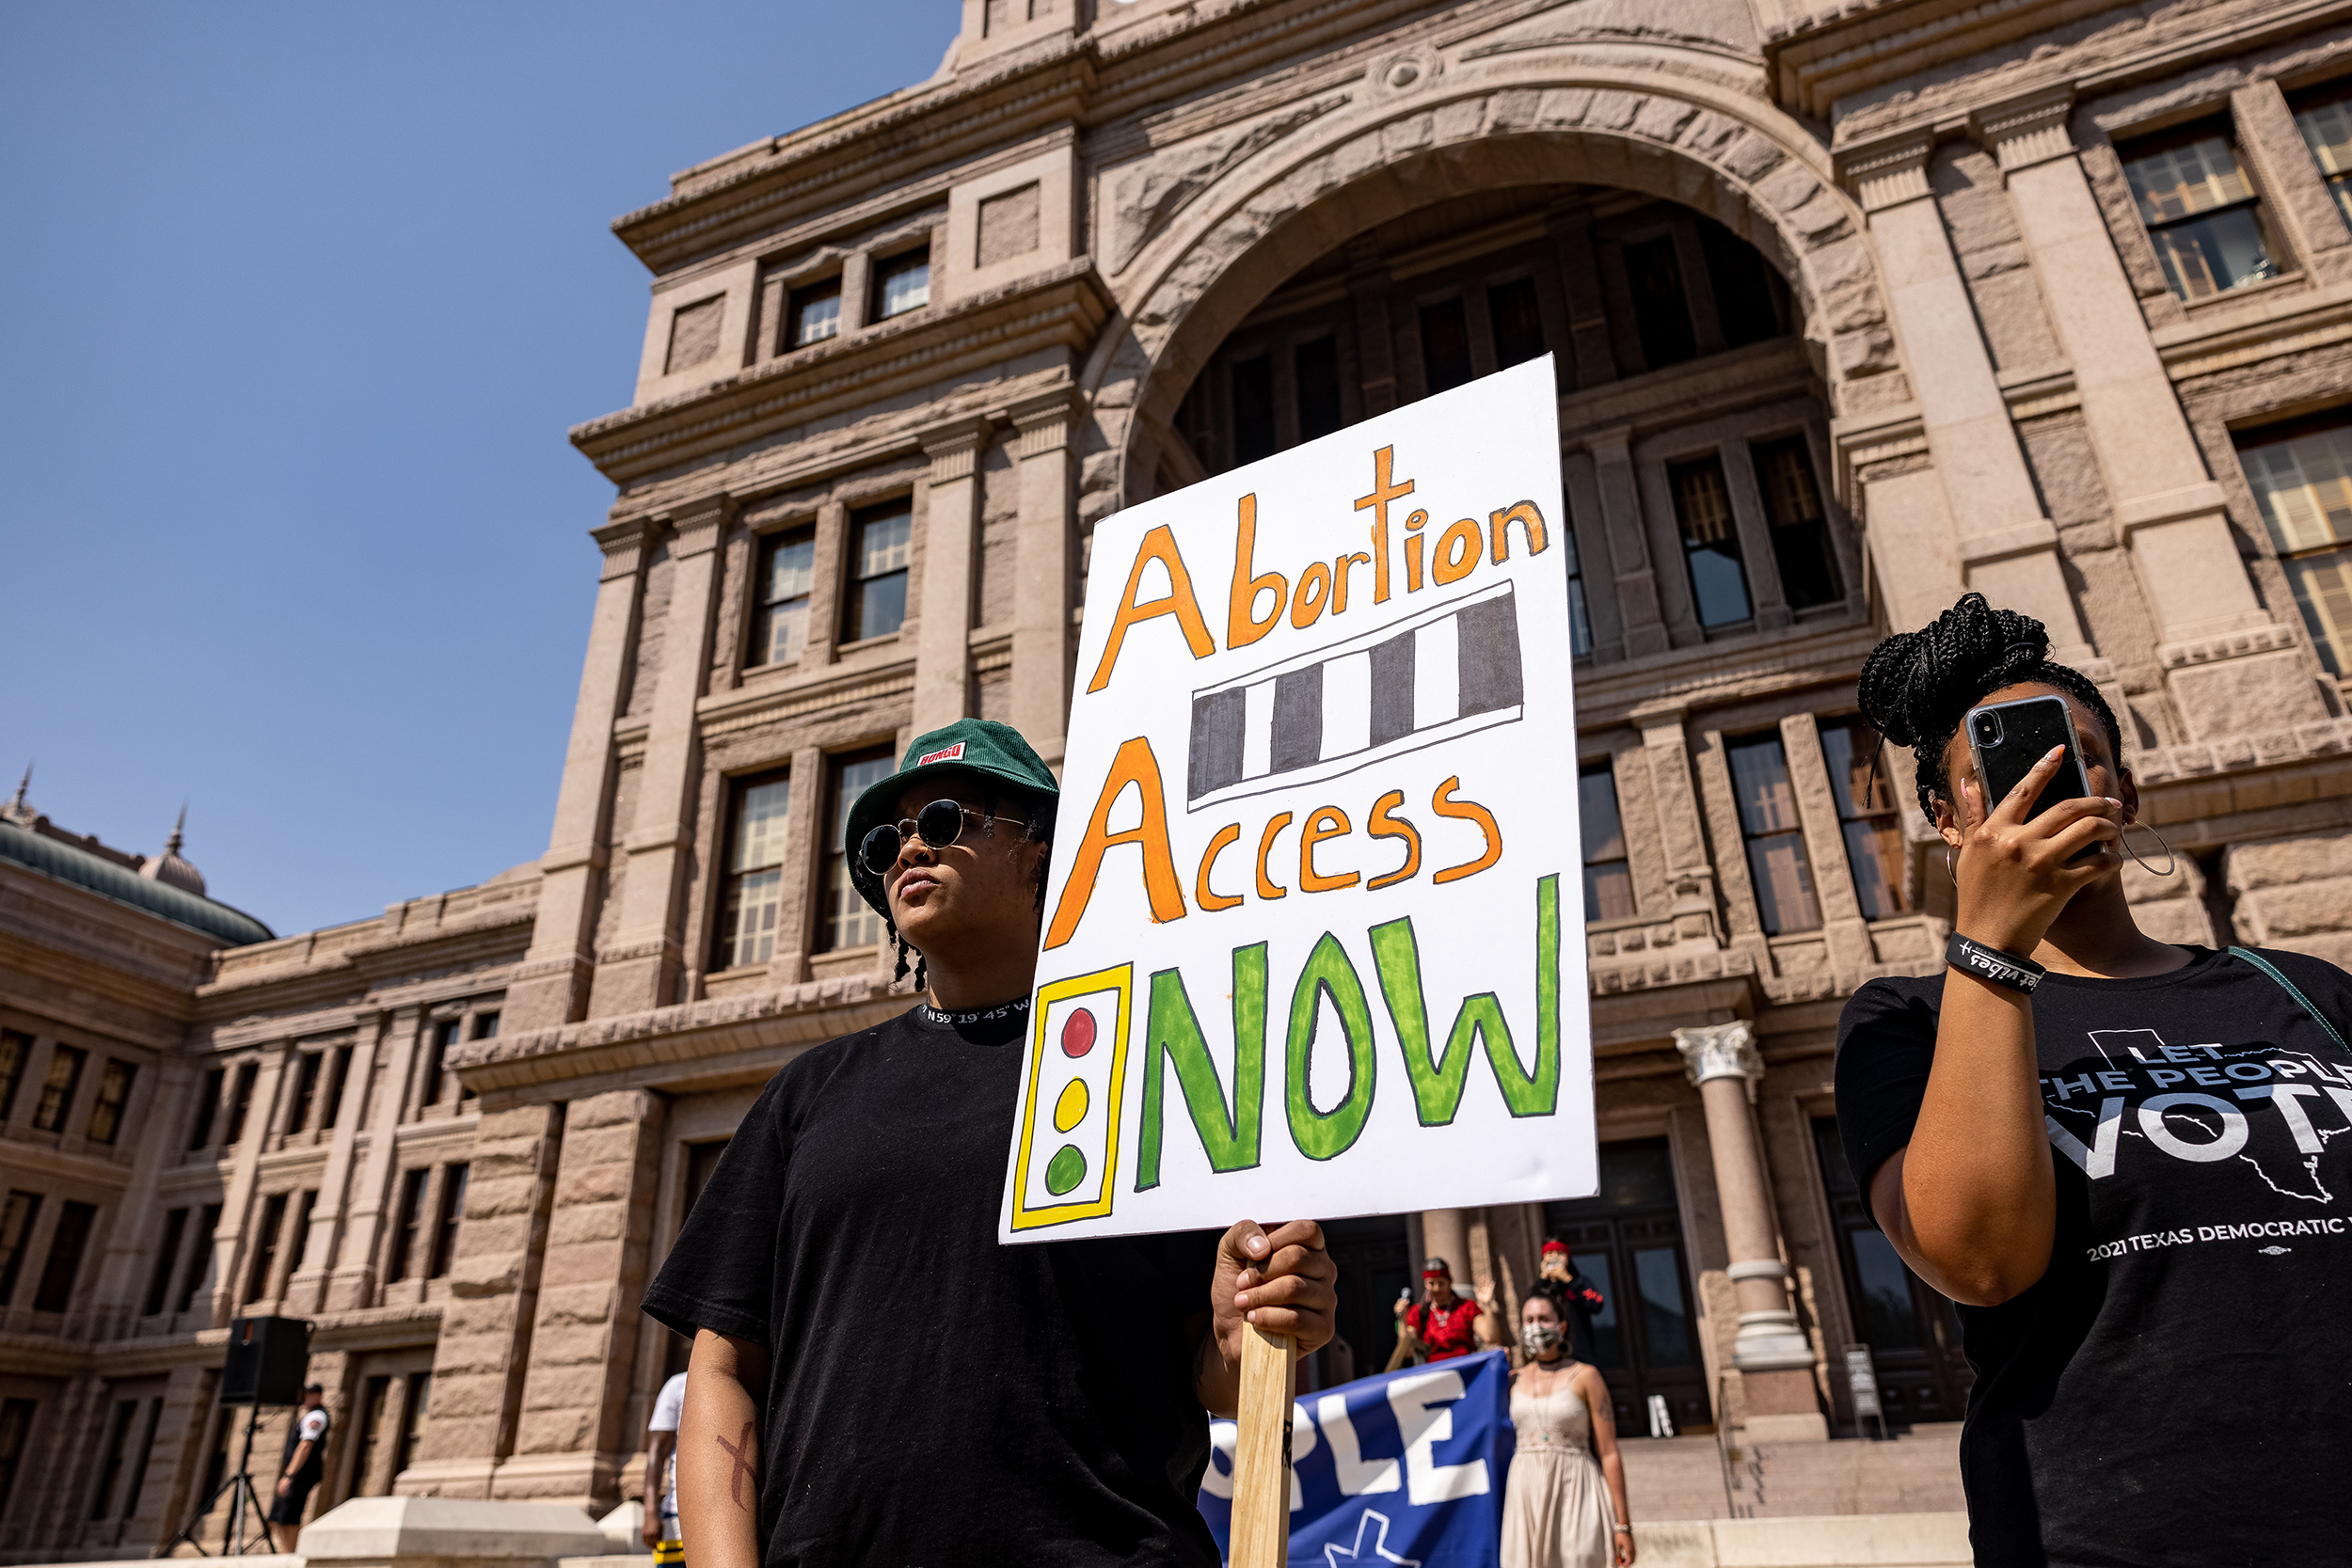 Supreme Court again asked to take up Texas abortion law